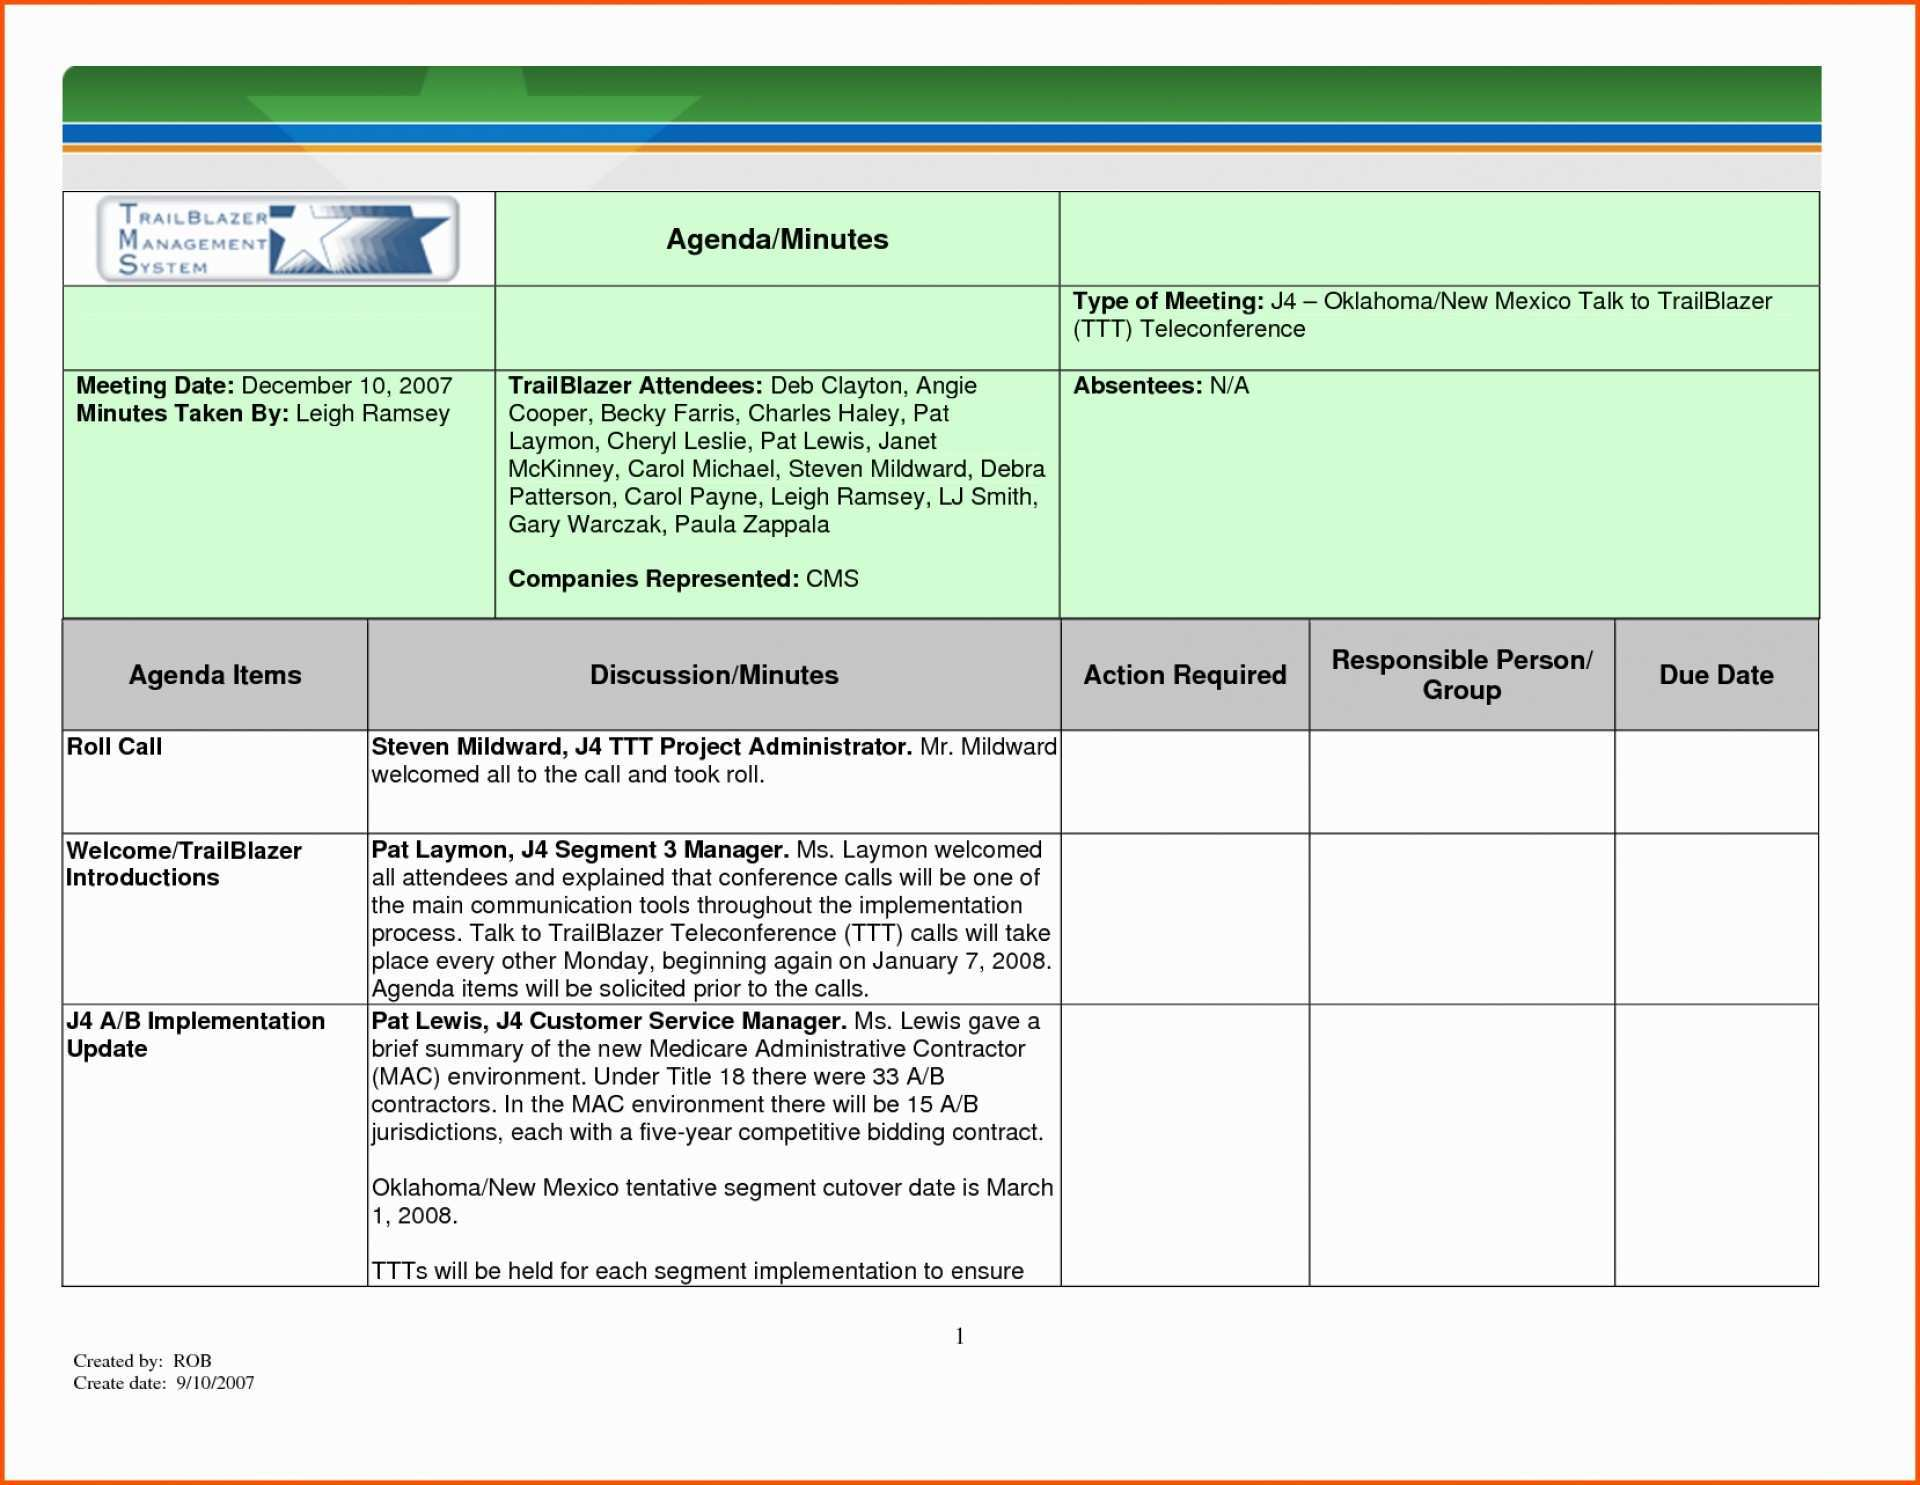 Meeting Minutes Action Items Template from legaldbol.com